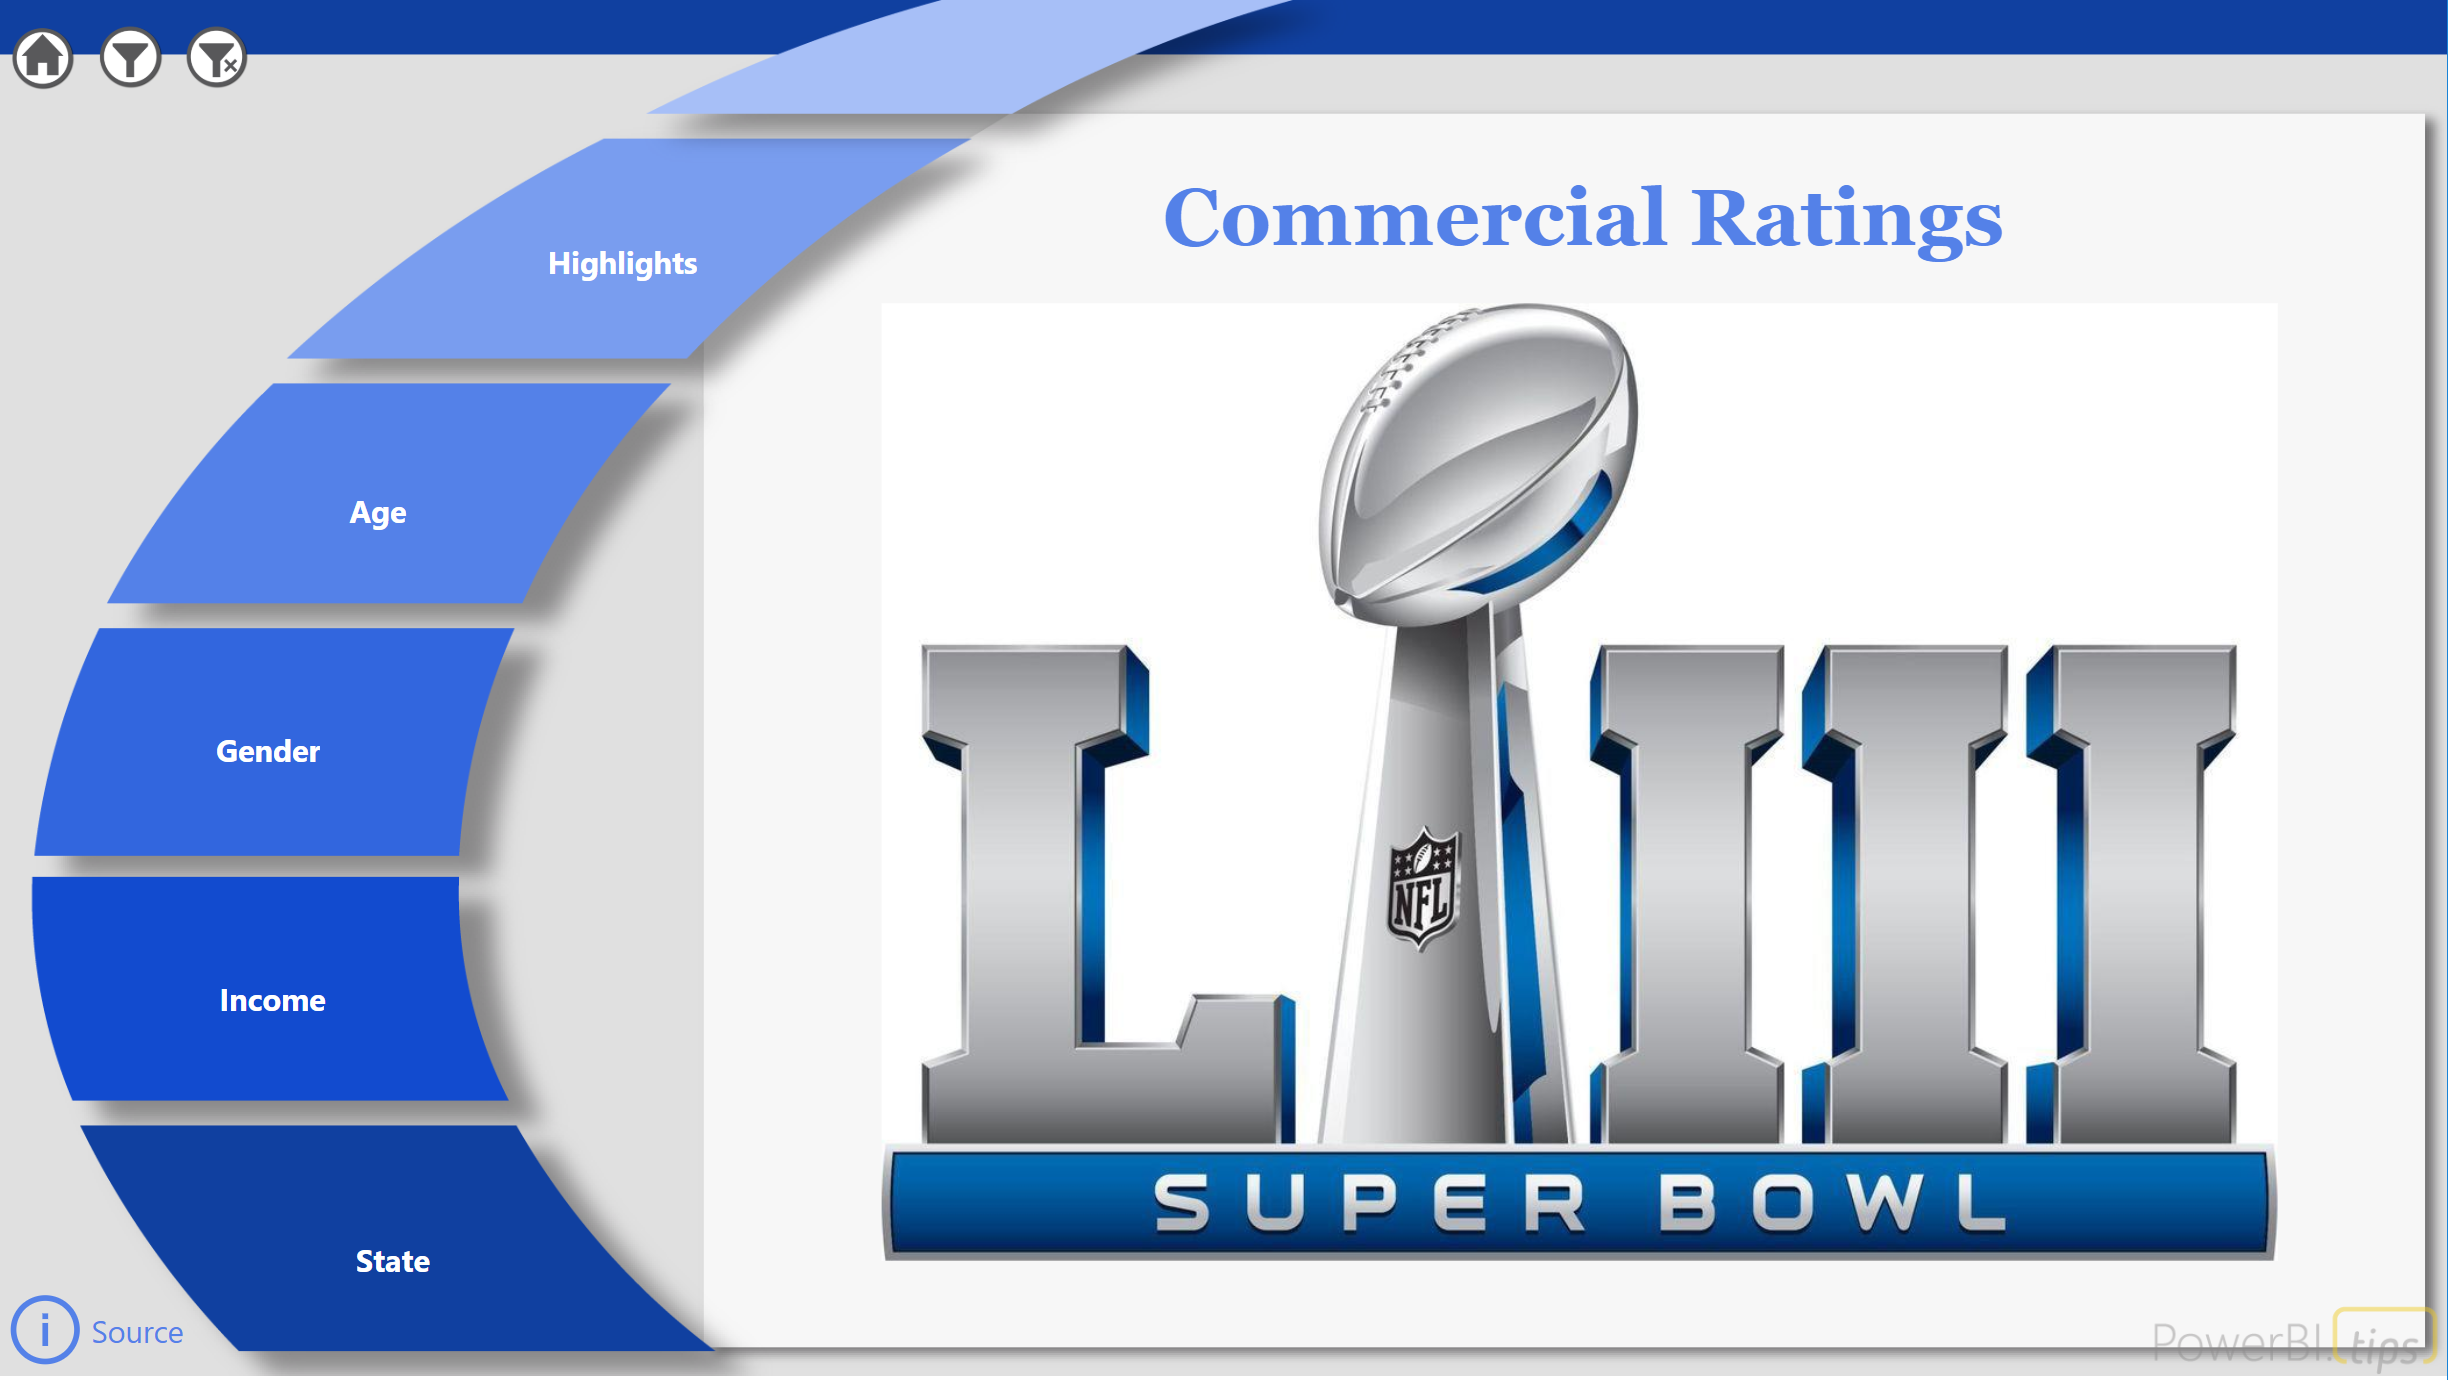 Super Bowl Commercial Ratings